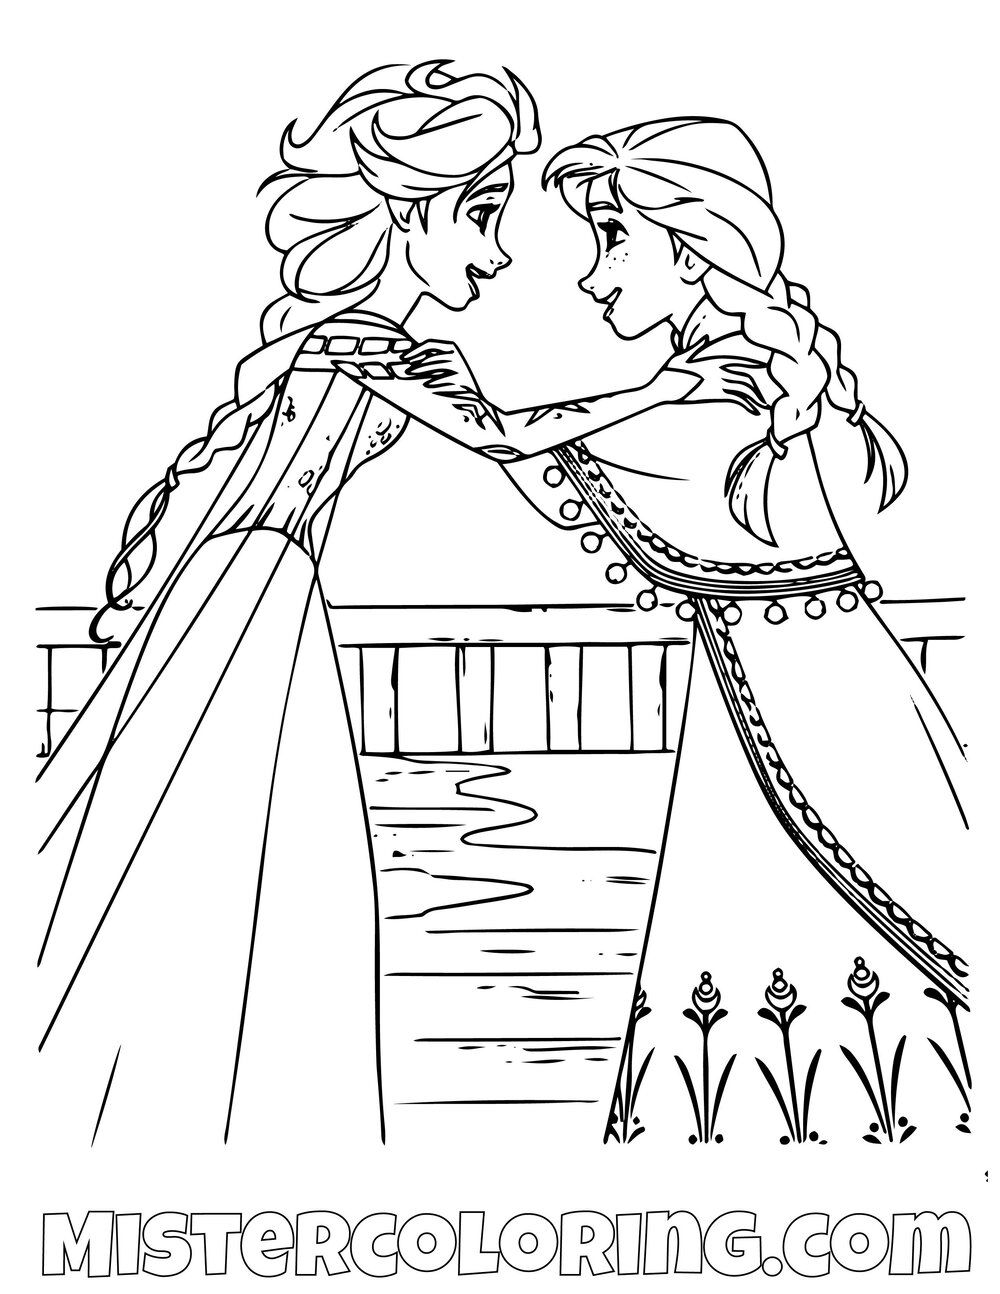 Queen Elsa And Princess Anna Talking Frozen 2 Coloring Pages For Kids Coloring Pages Coloring Pages For Kids Color